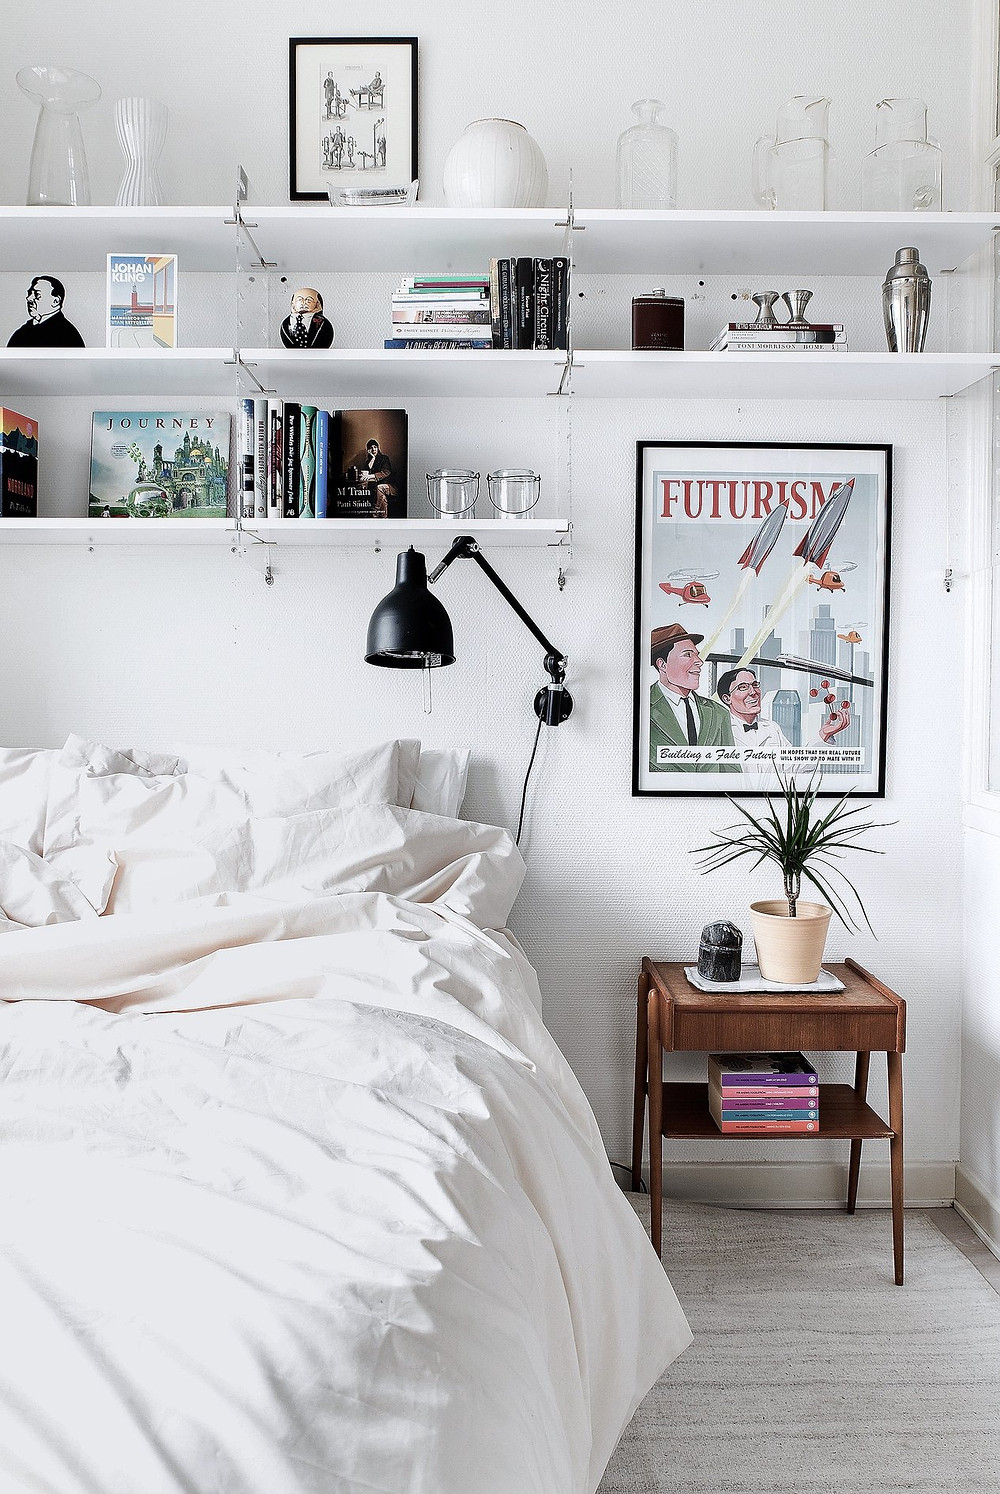 Mainstreet-Stockholm-Small-Space-Living-Bedroom